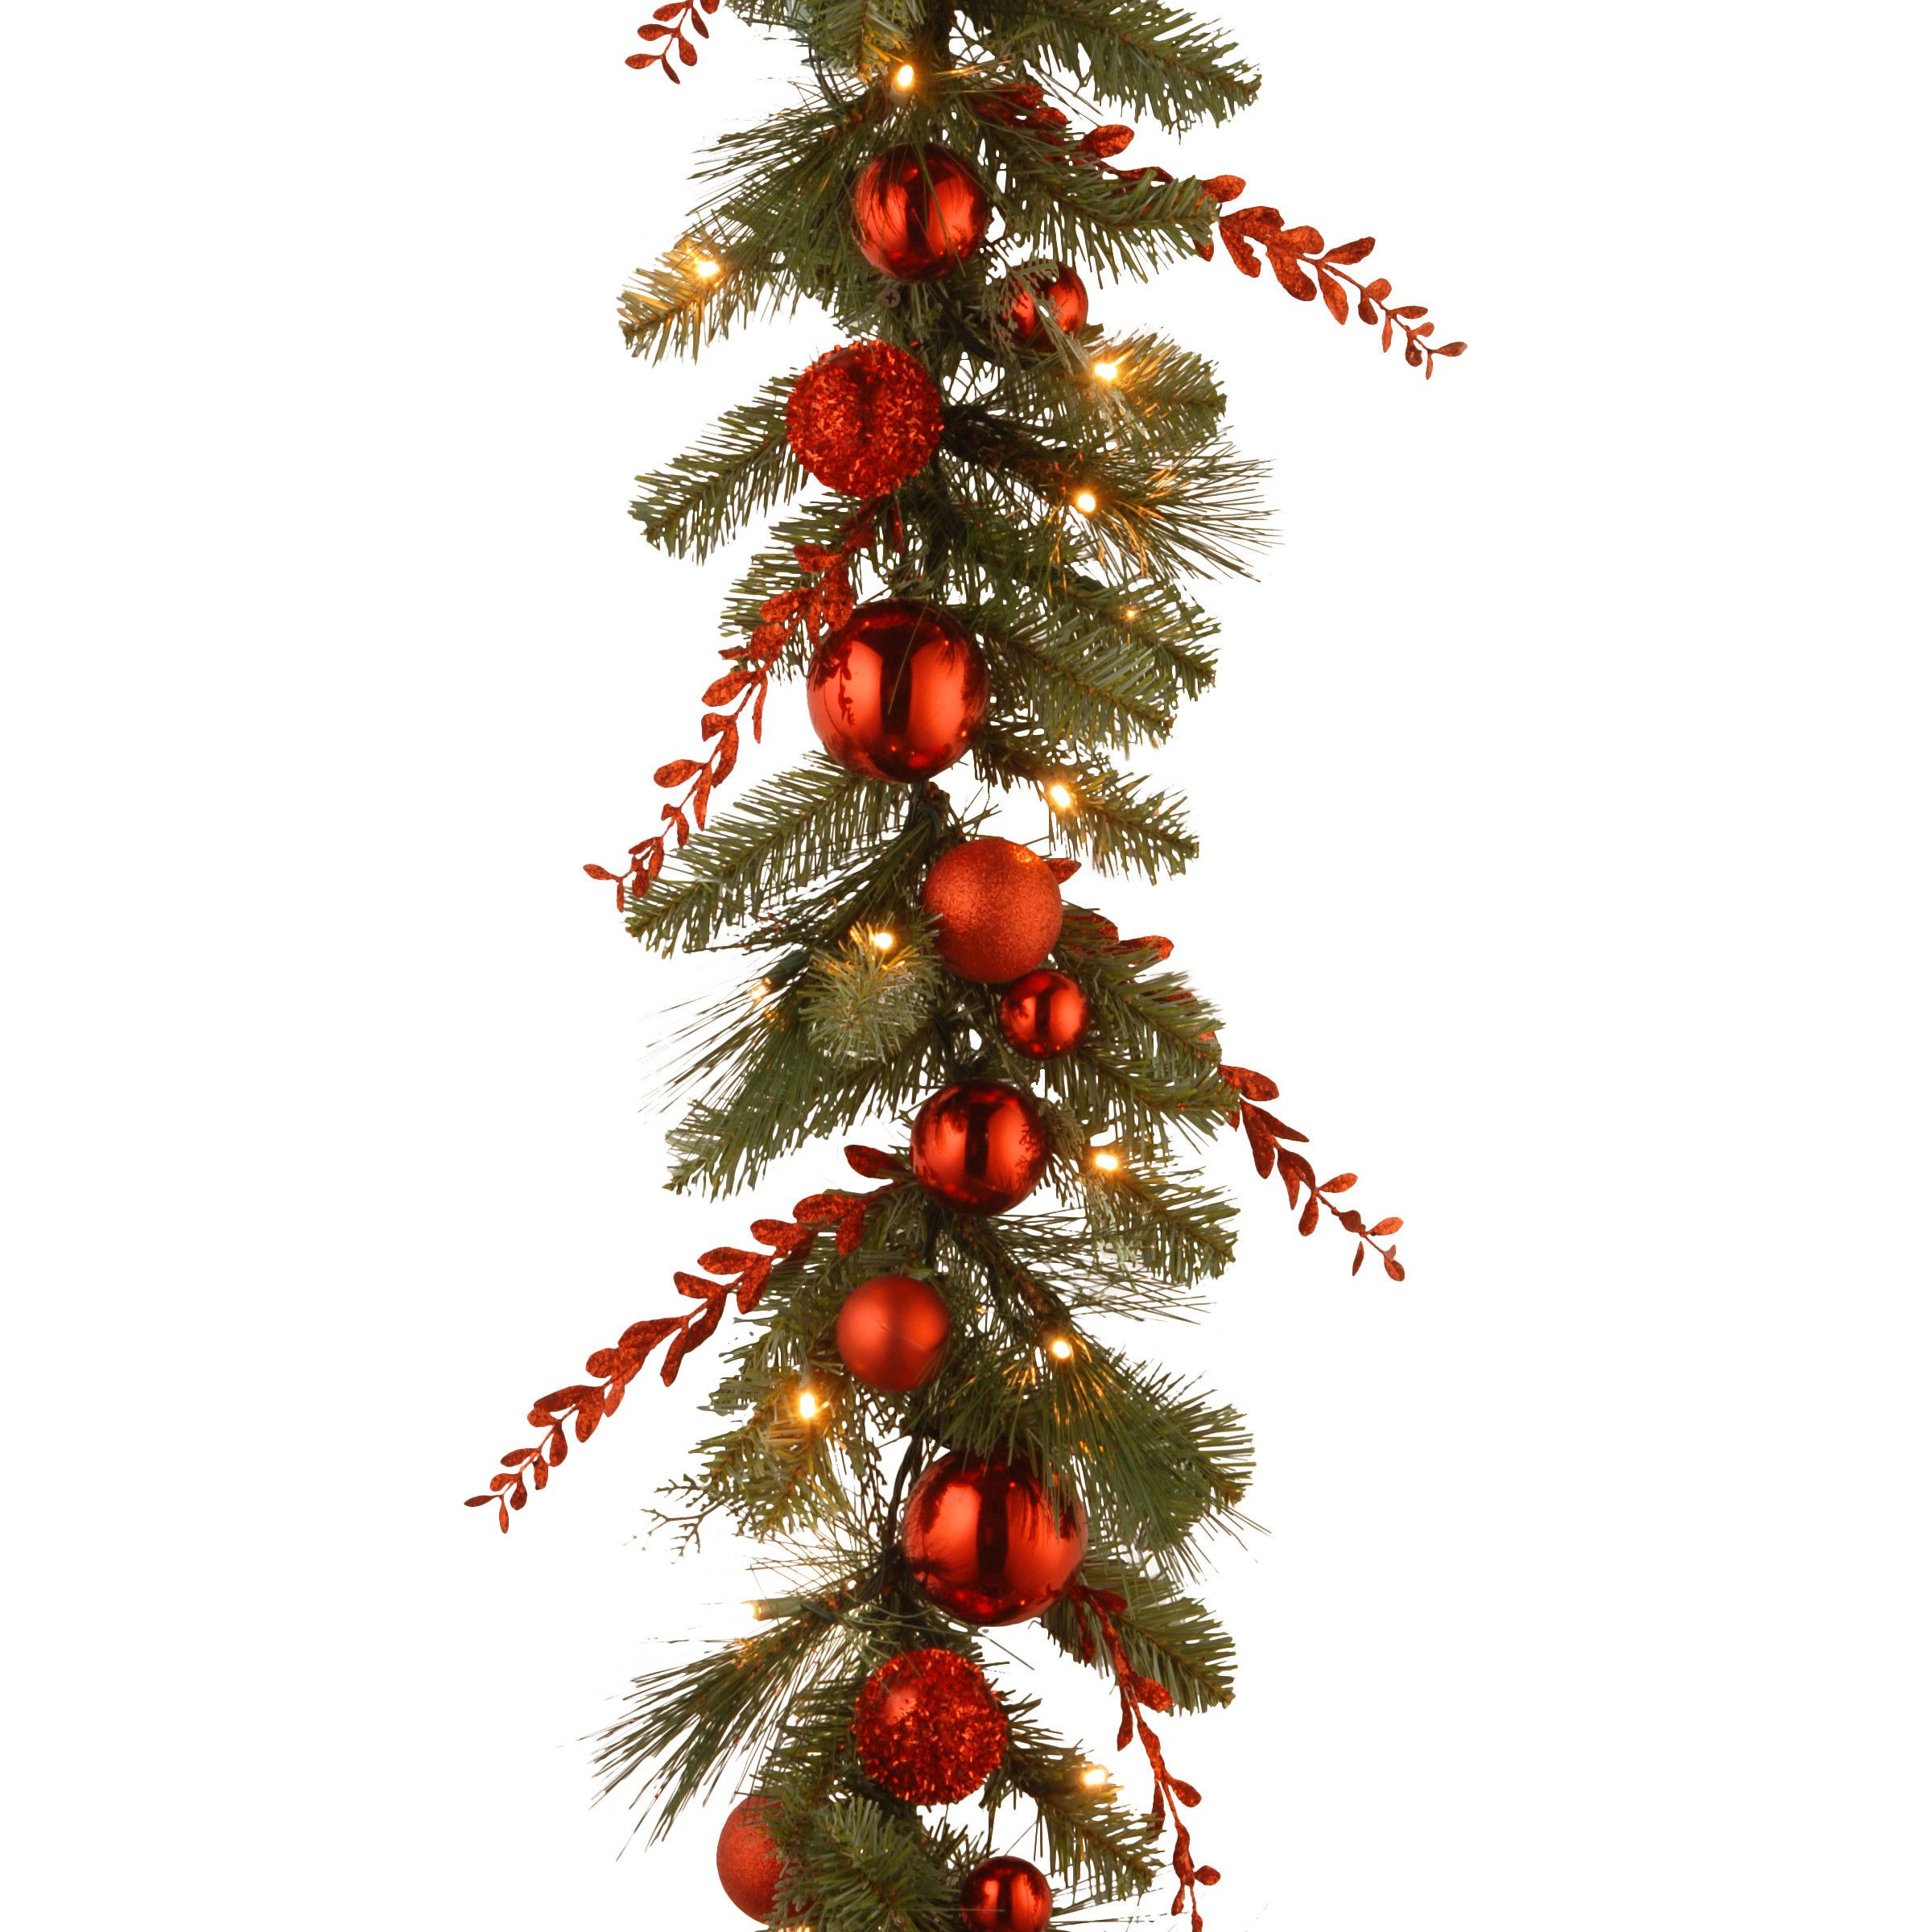 50 outdoor christmas decoration ideas stylish outside christmas decorating for your yard - Garland Christmas Decor